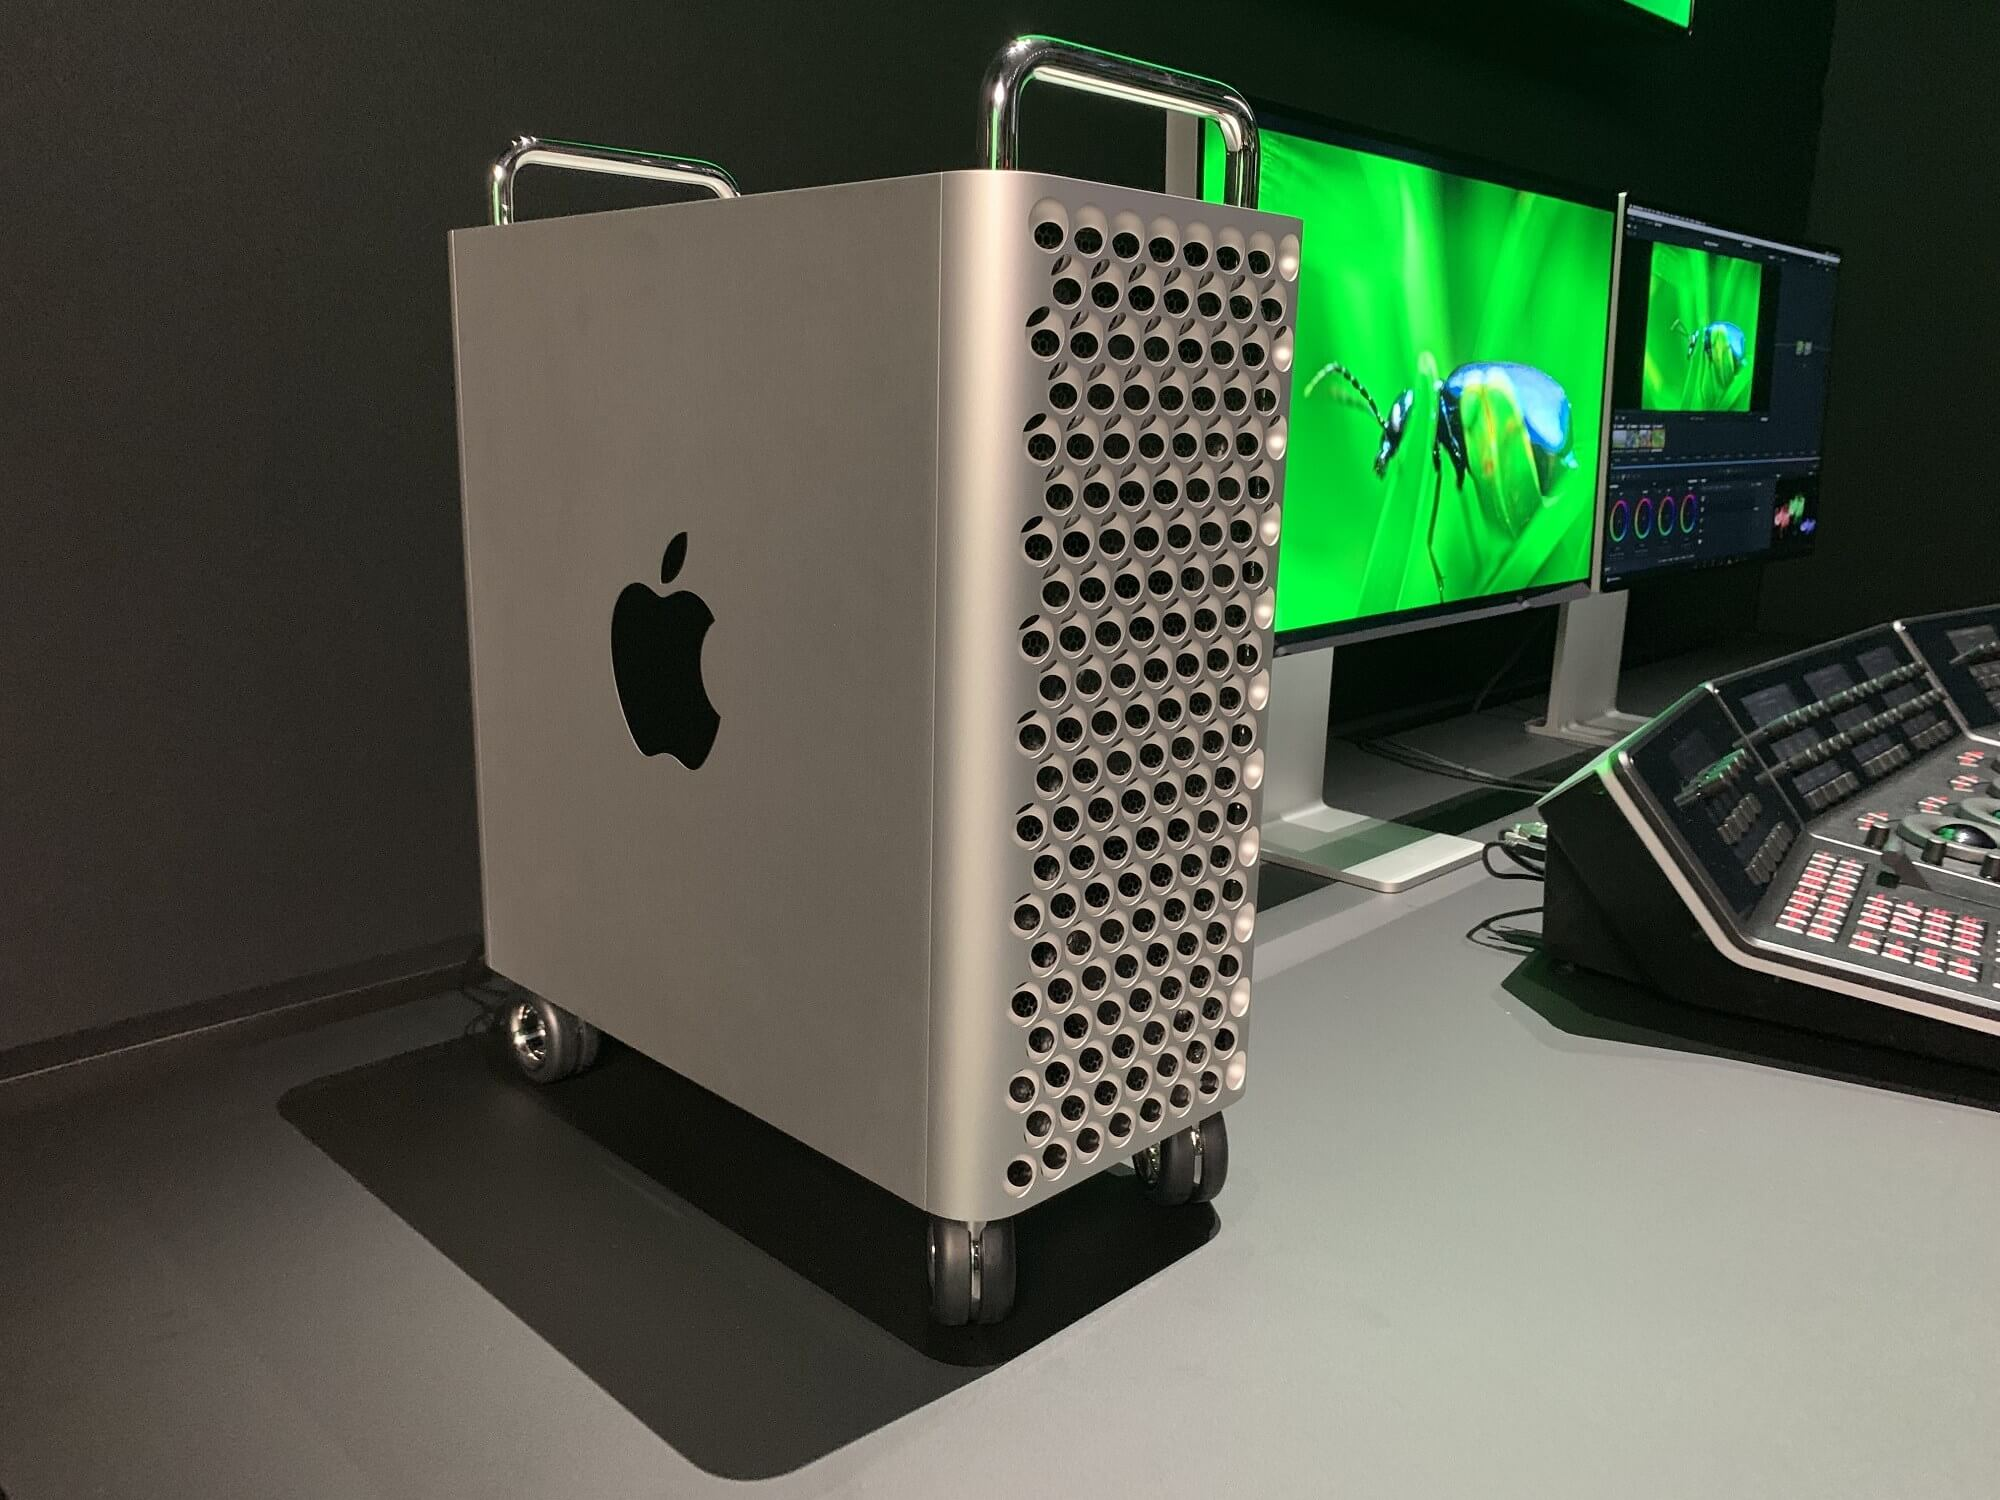 A 64-core Mac Pro priced at $19,000+ rumored to arrive next year